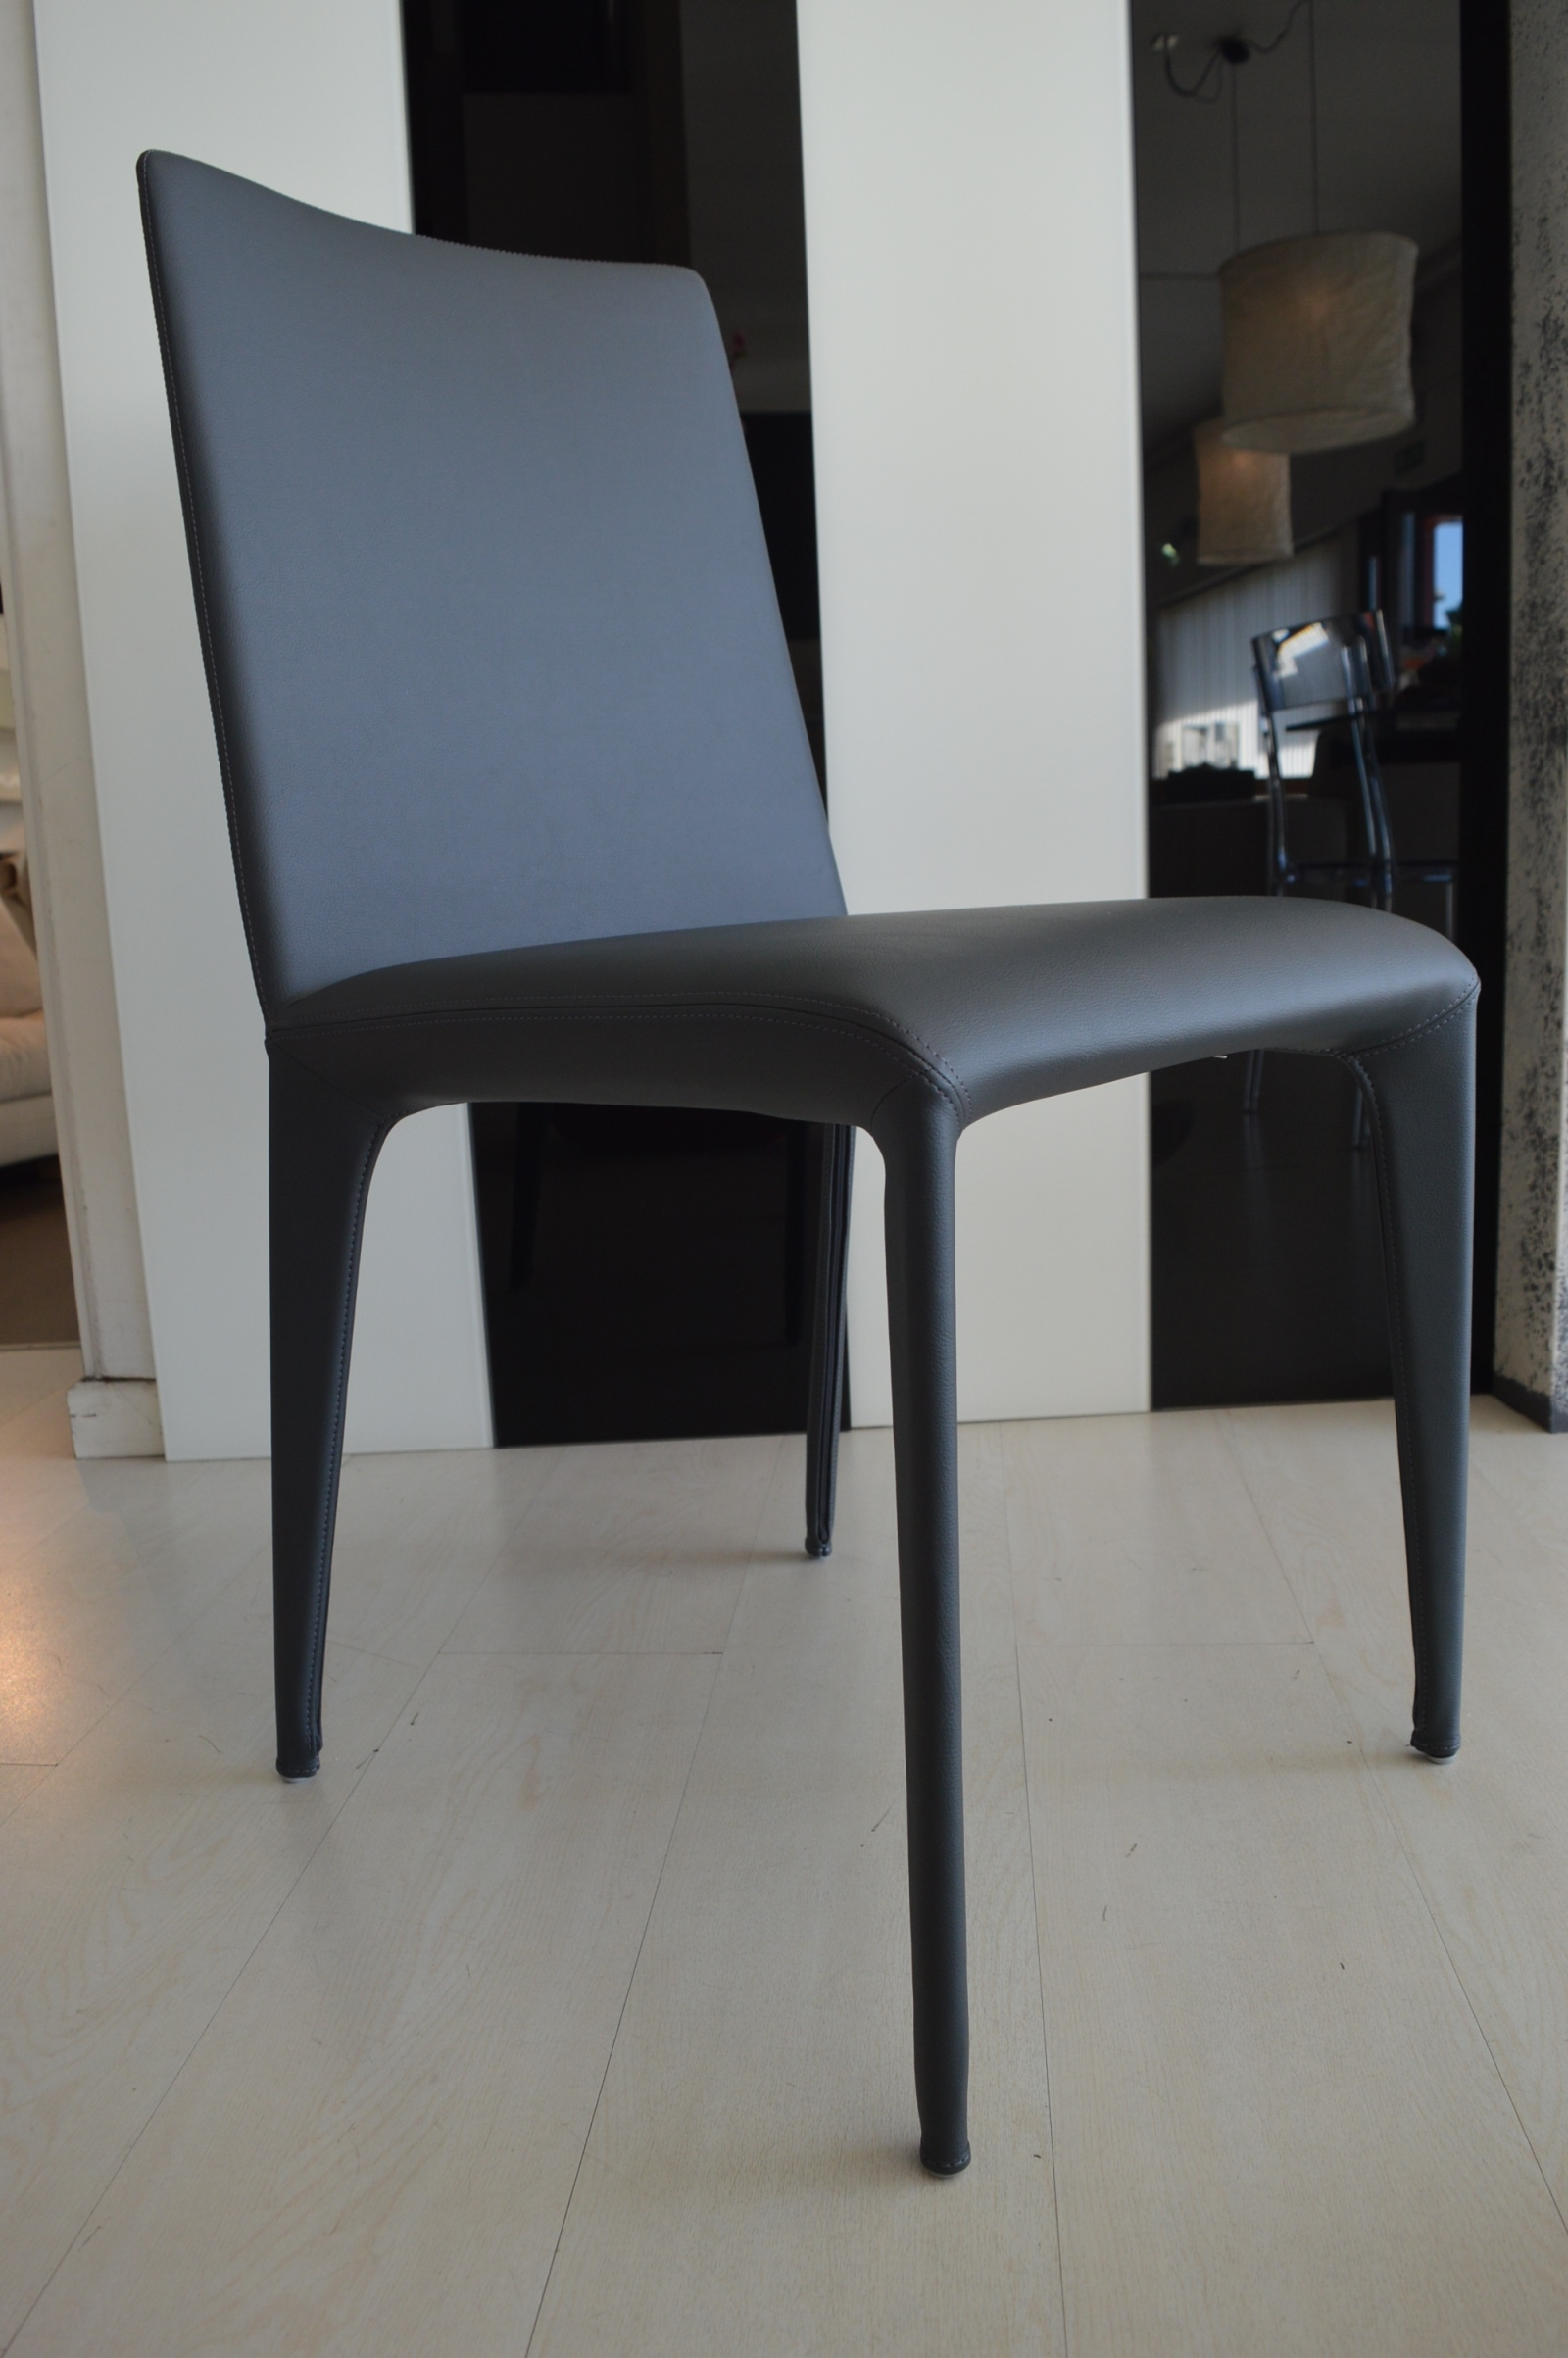 Bonaldo Sedia Filly up scontato del -42 %